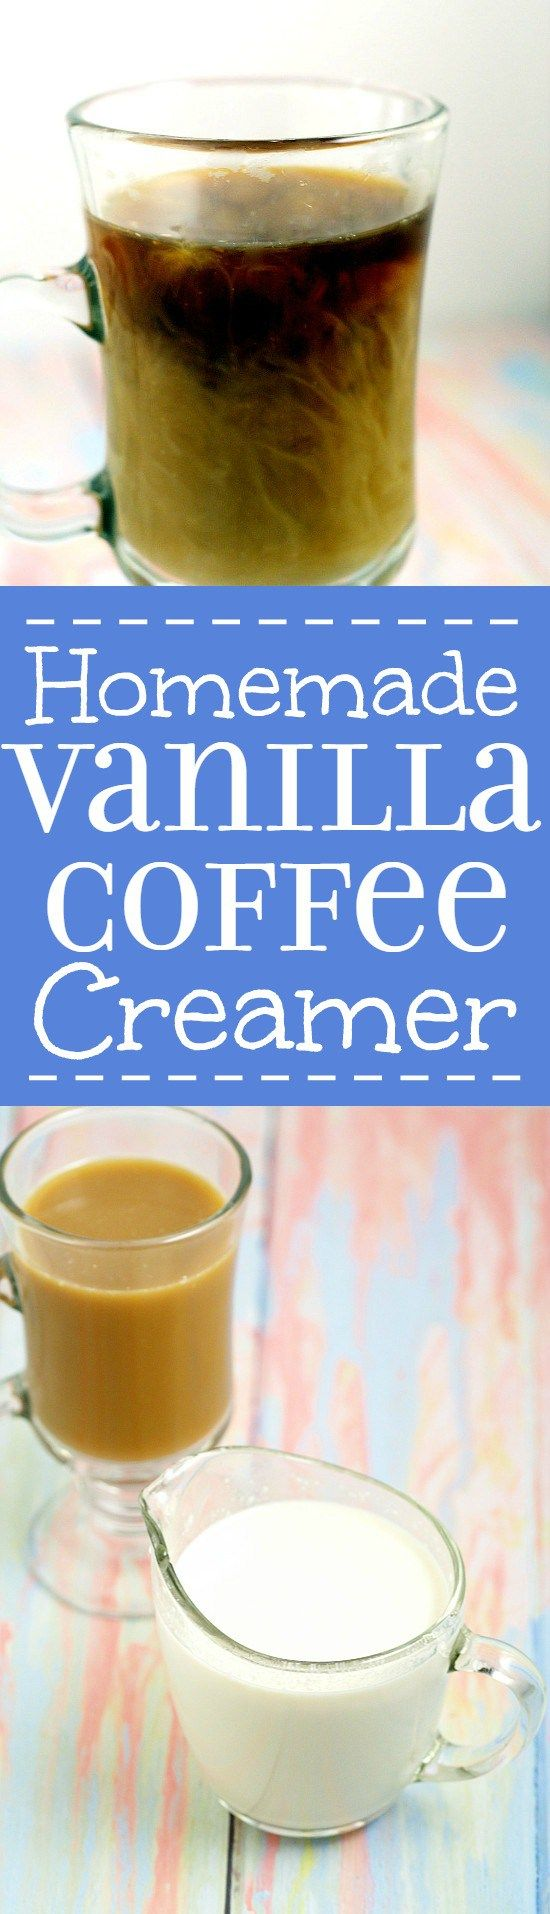 Easy and classic Homemade Vanilla Creamer recipe is frugal and delicious wayto make your morning coffee a special treat. Easy to make with just 4 ingredients! Perfect! So easy to make and tastes just like store bought coffee creamer!